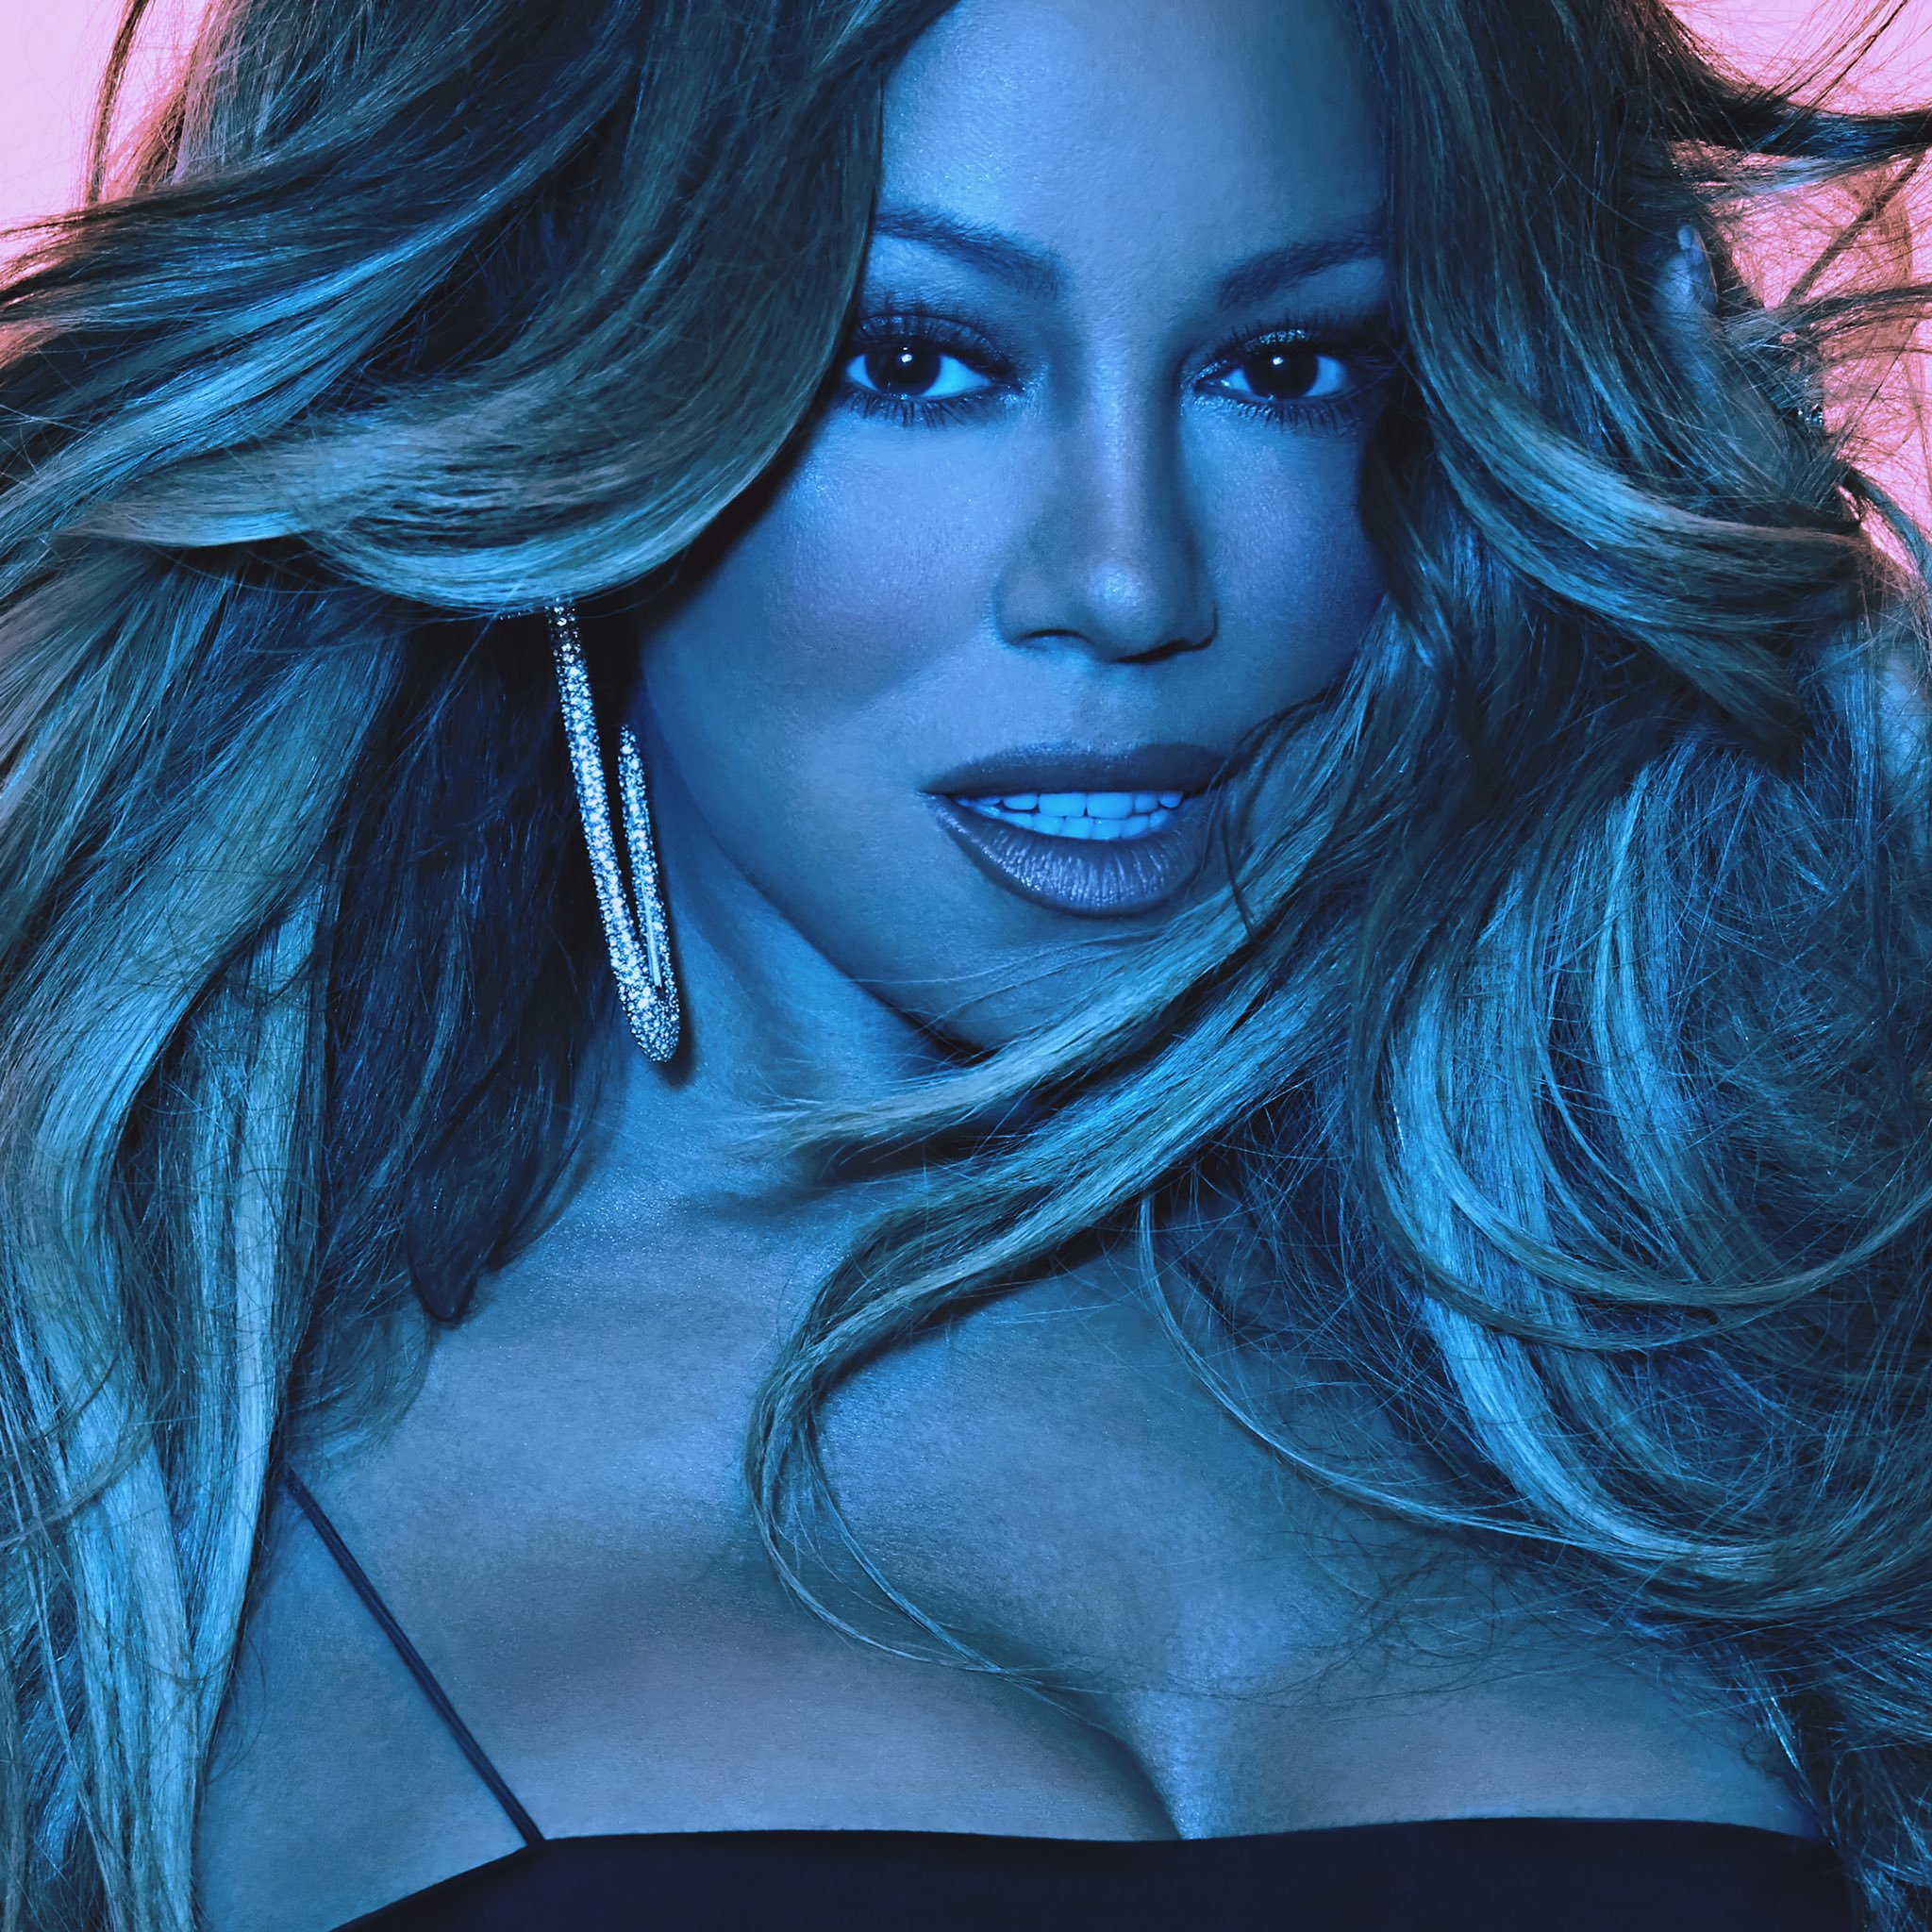 Mariah Carey Goes The Distance on New Track Featuring Ty Dolla $ign